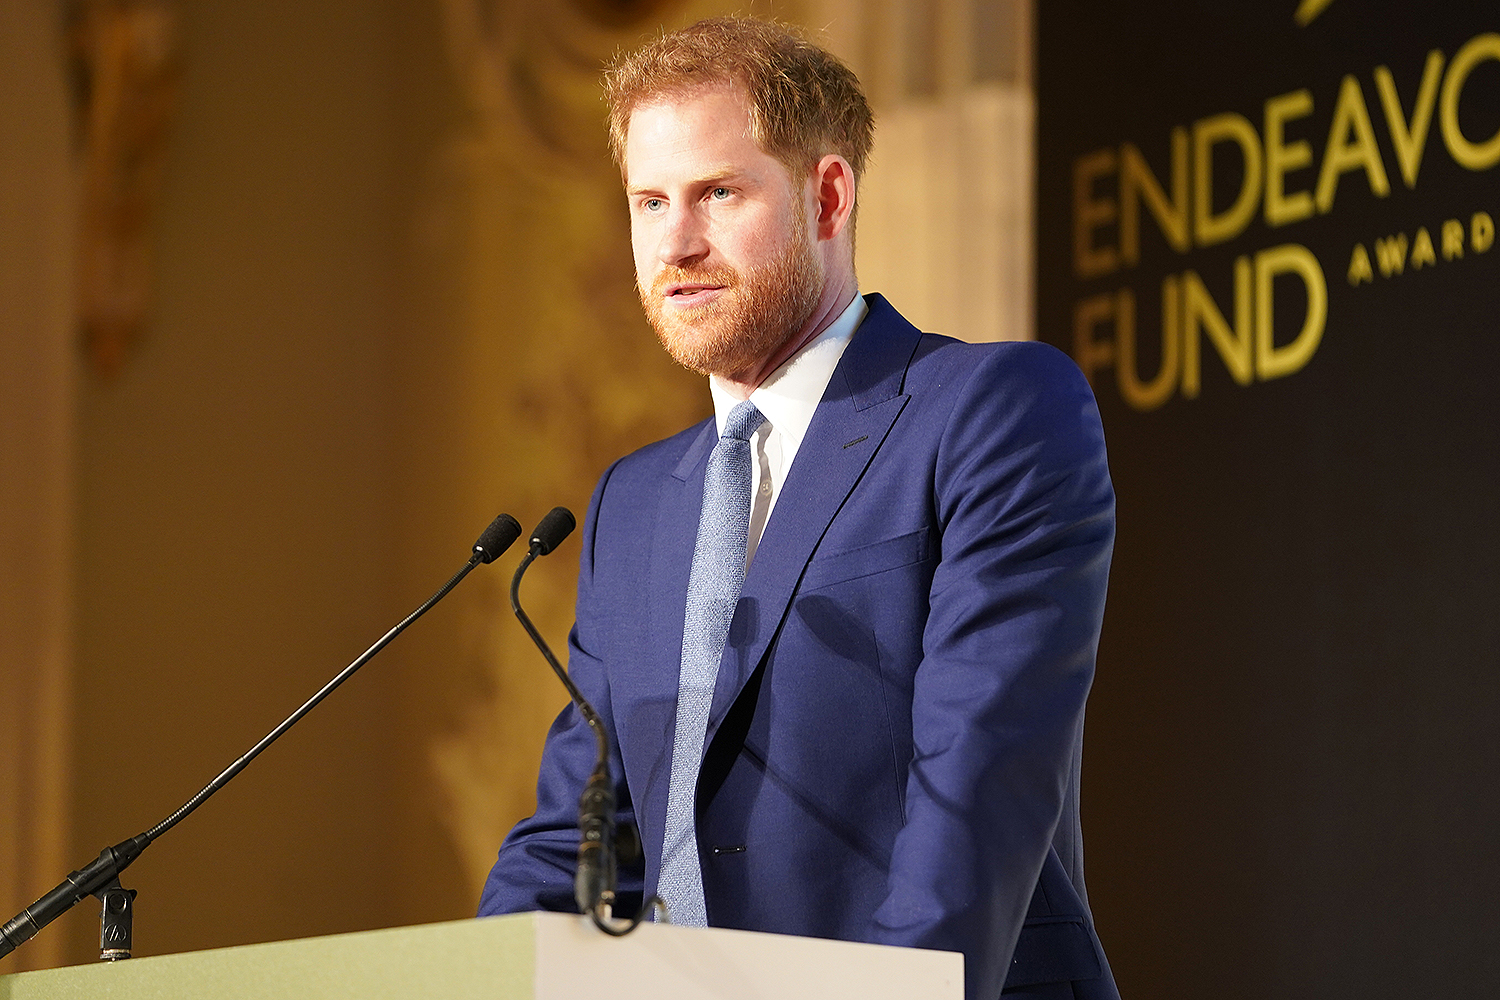 Prince Harry Addresses Veterans Ahead of Royal Exit: 'A Lot of You Have Told Me You Have My Back'